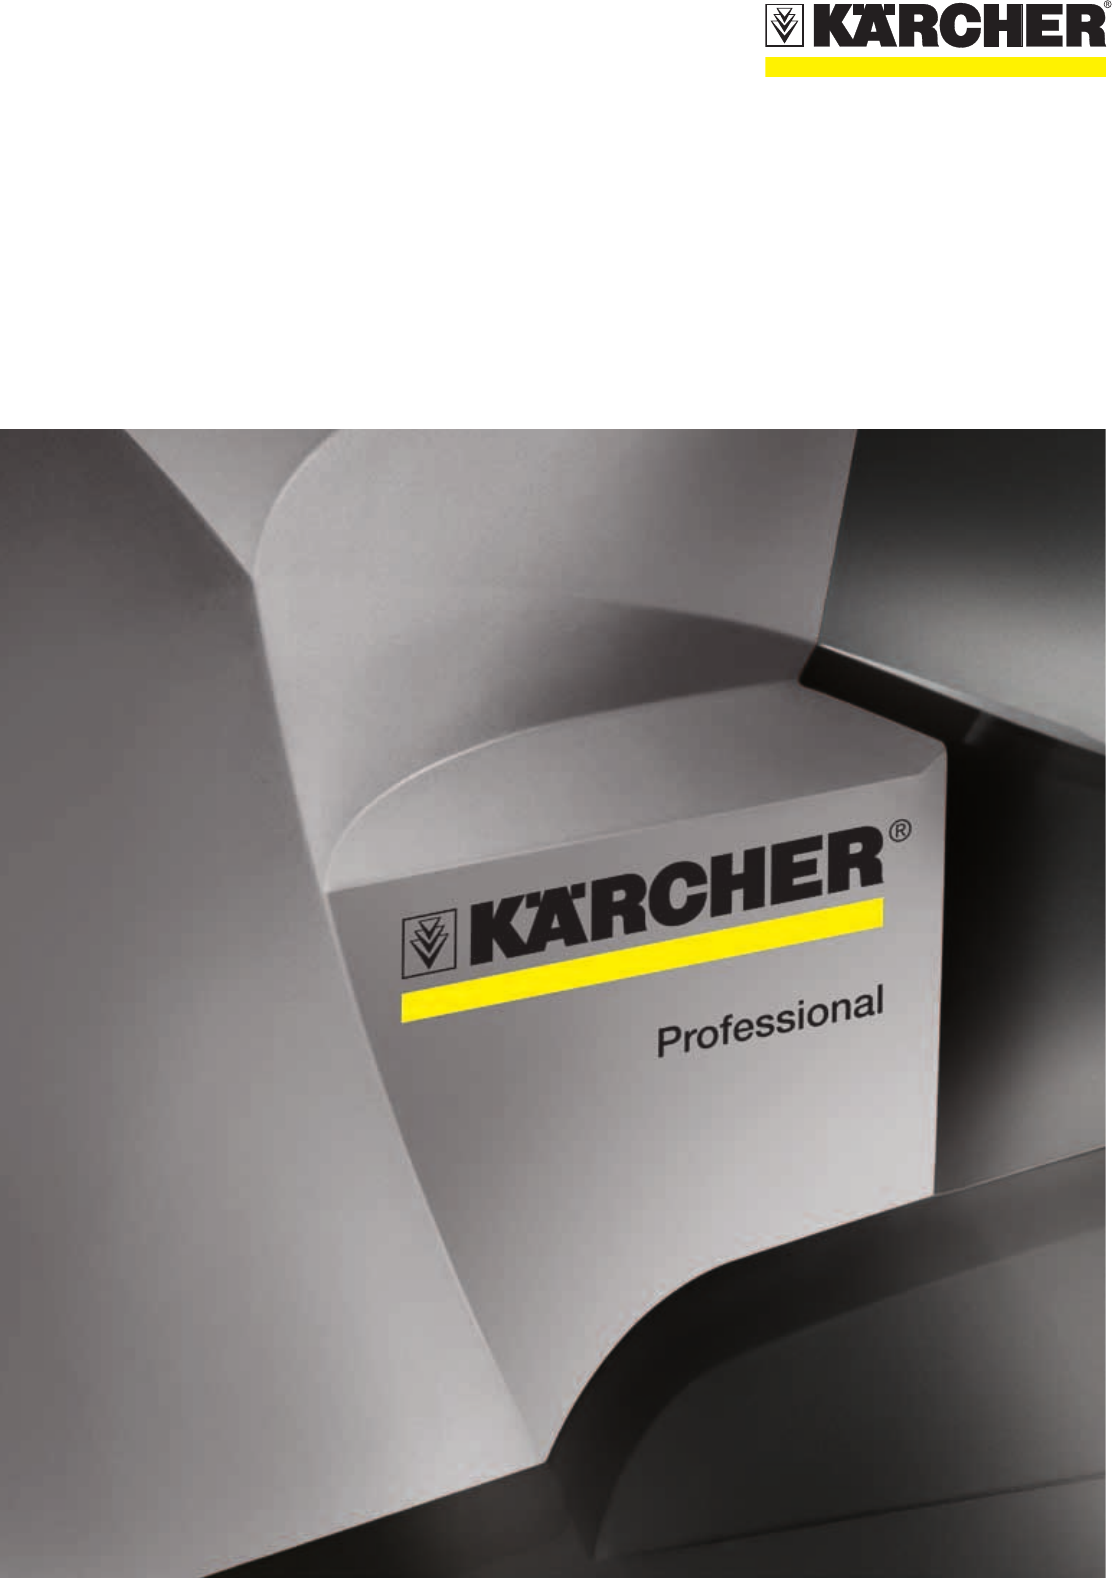 Karcher Variable Triple Nozzle With Straight Fan Chemical Jet For HDS 550